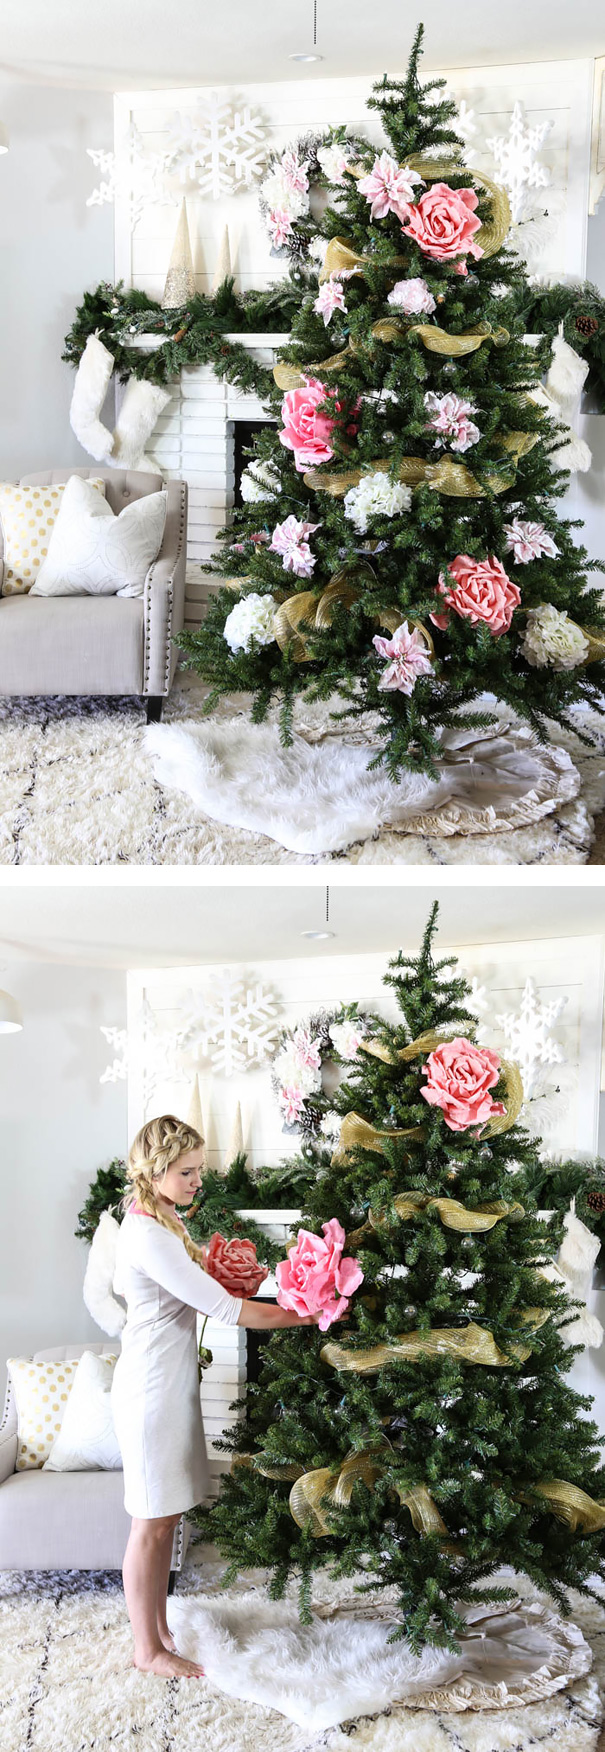 People Are Decorating Their Christmas Trees With Flowers And The Results Are6